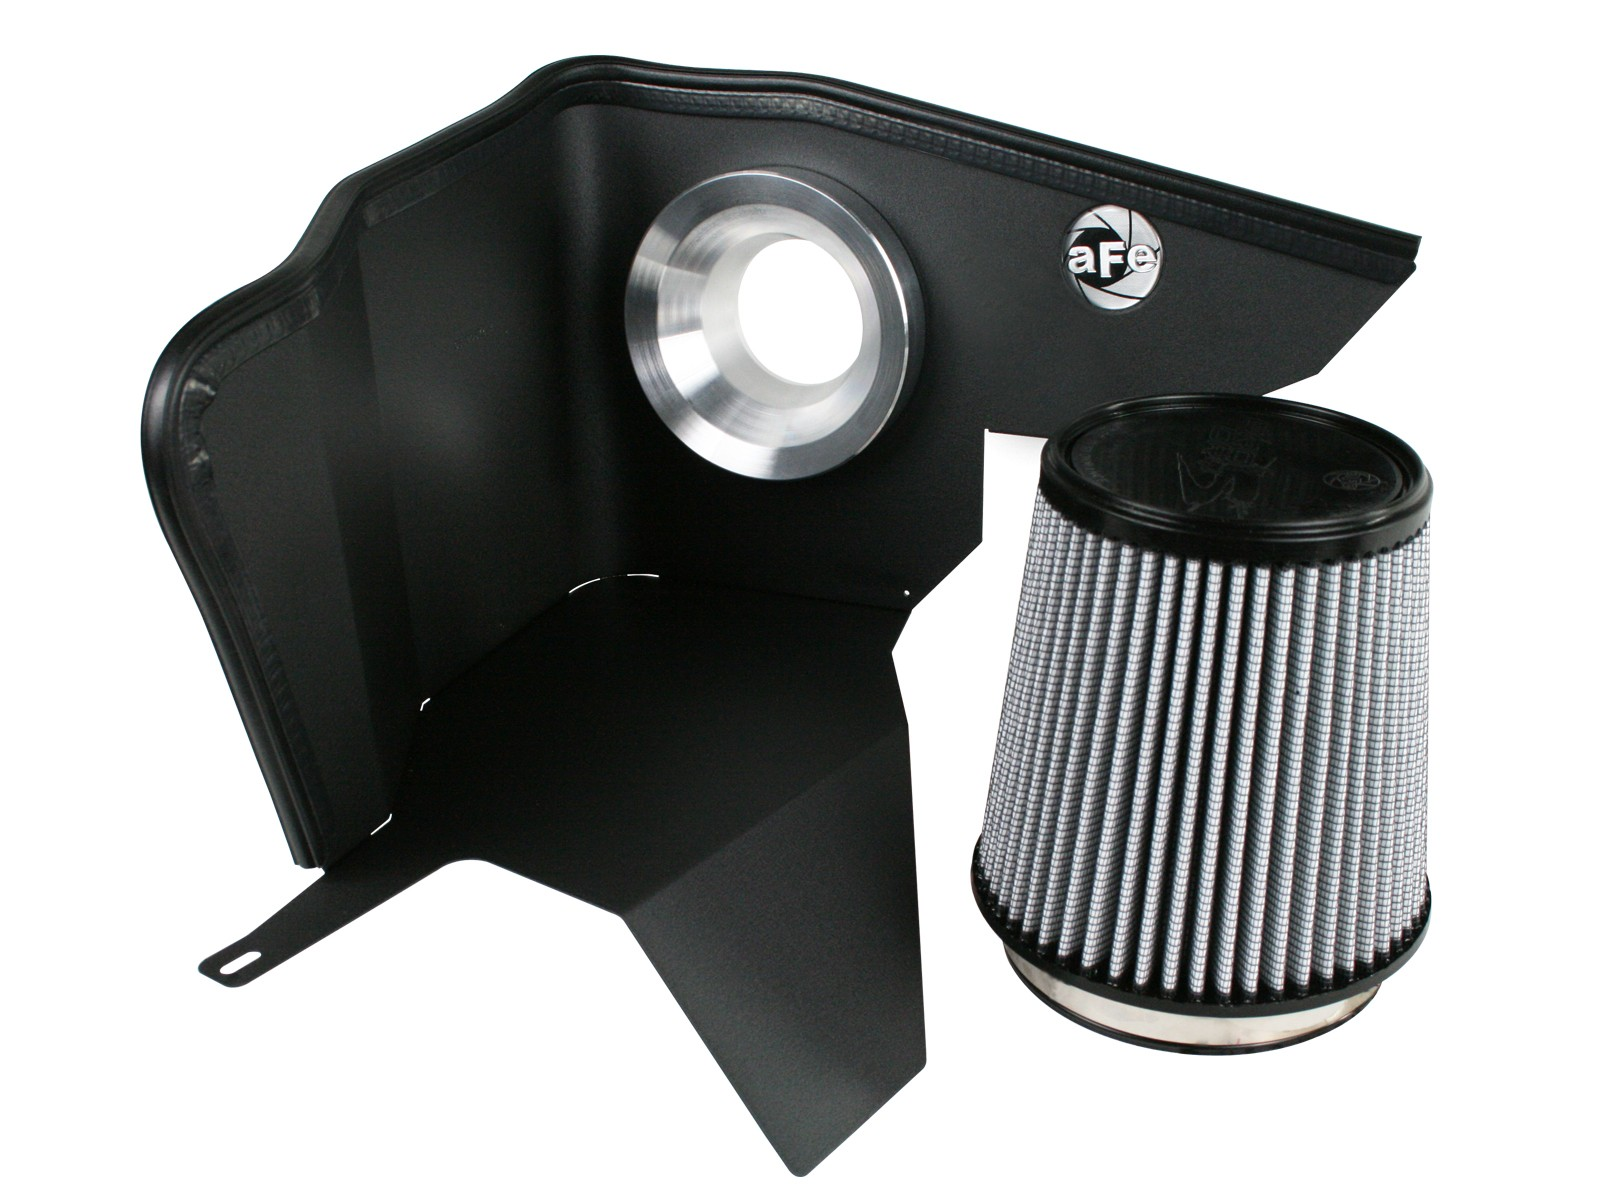 aFe POWER 51-10671 Magnum FORCE Stage-1 Pro DRY S Cold Air Intake System